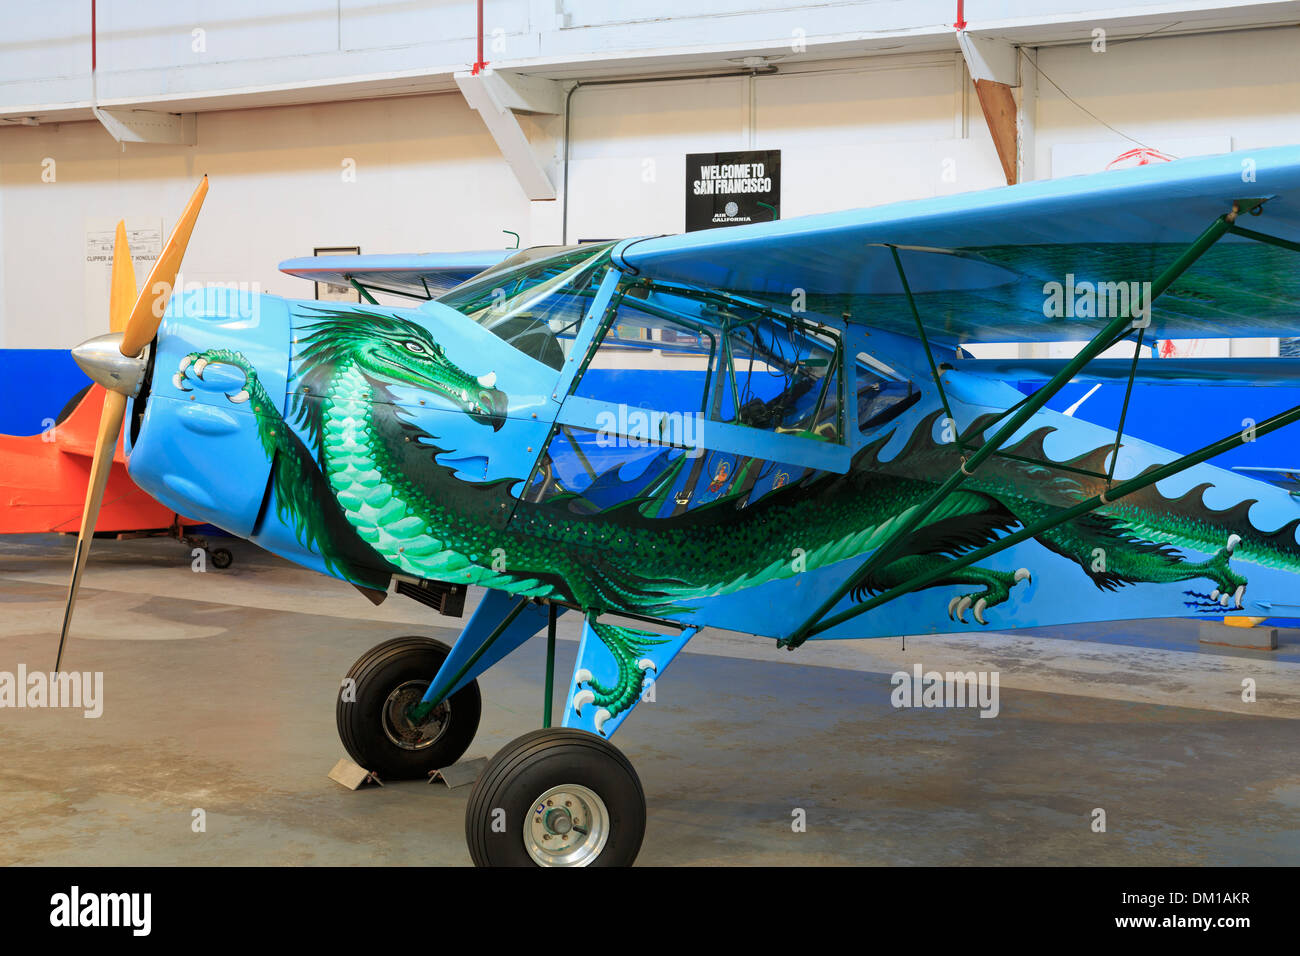 Oakland Aviation Museum,Oakland,California,USA - Stock Image